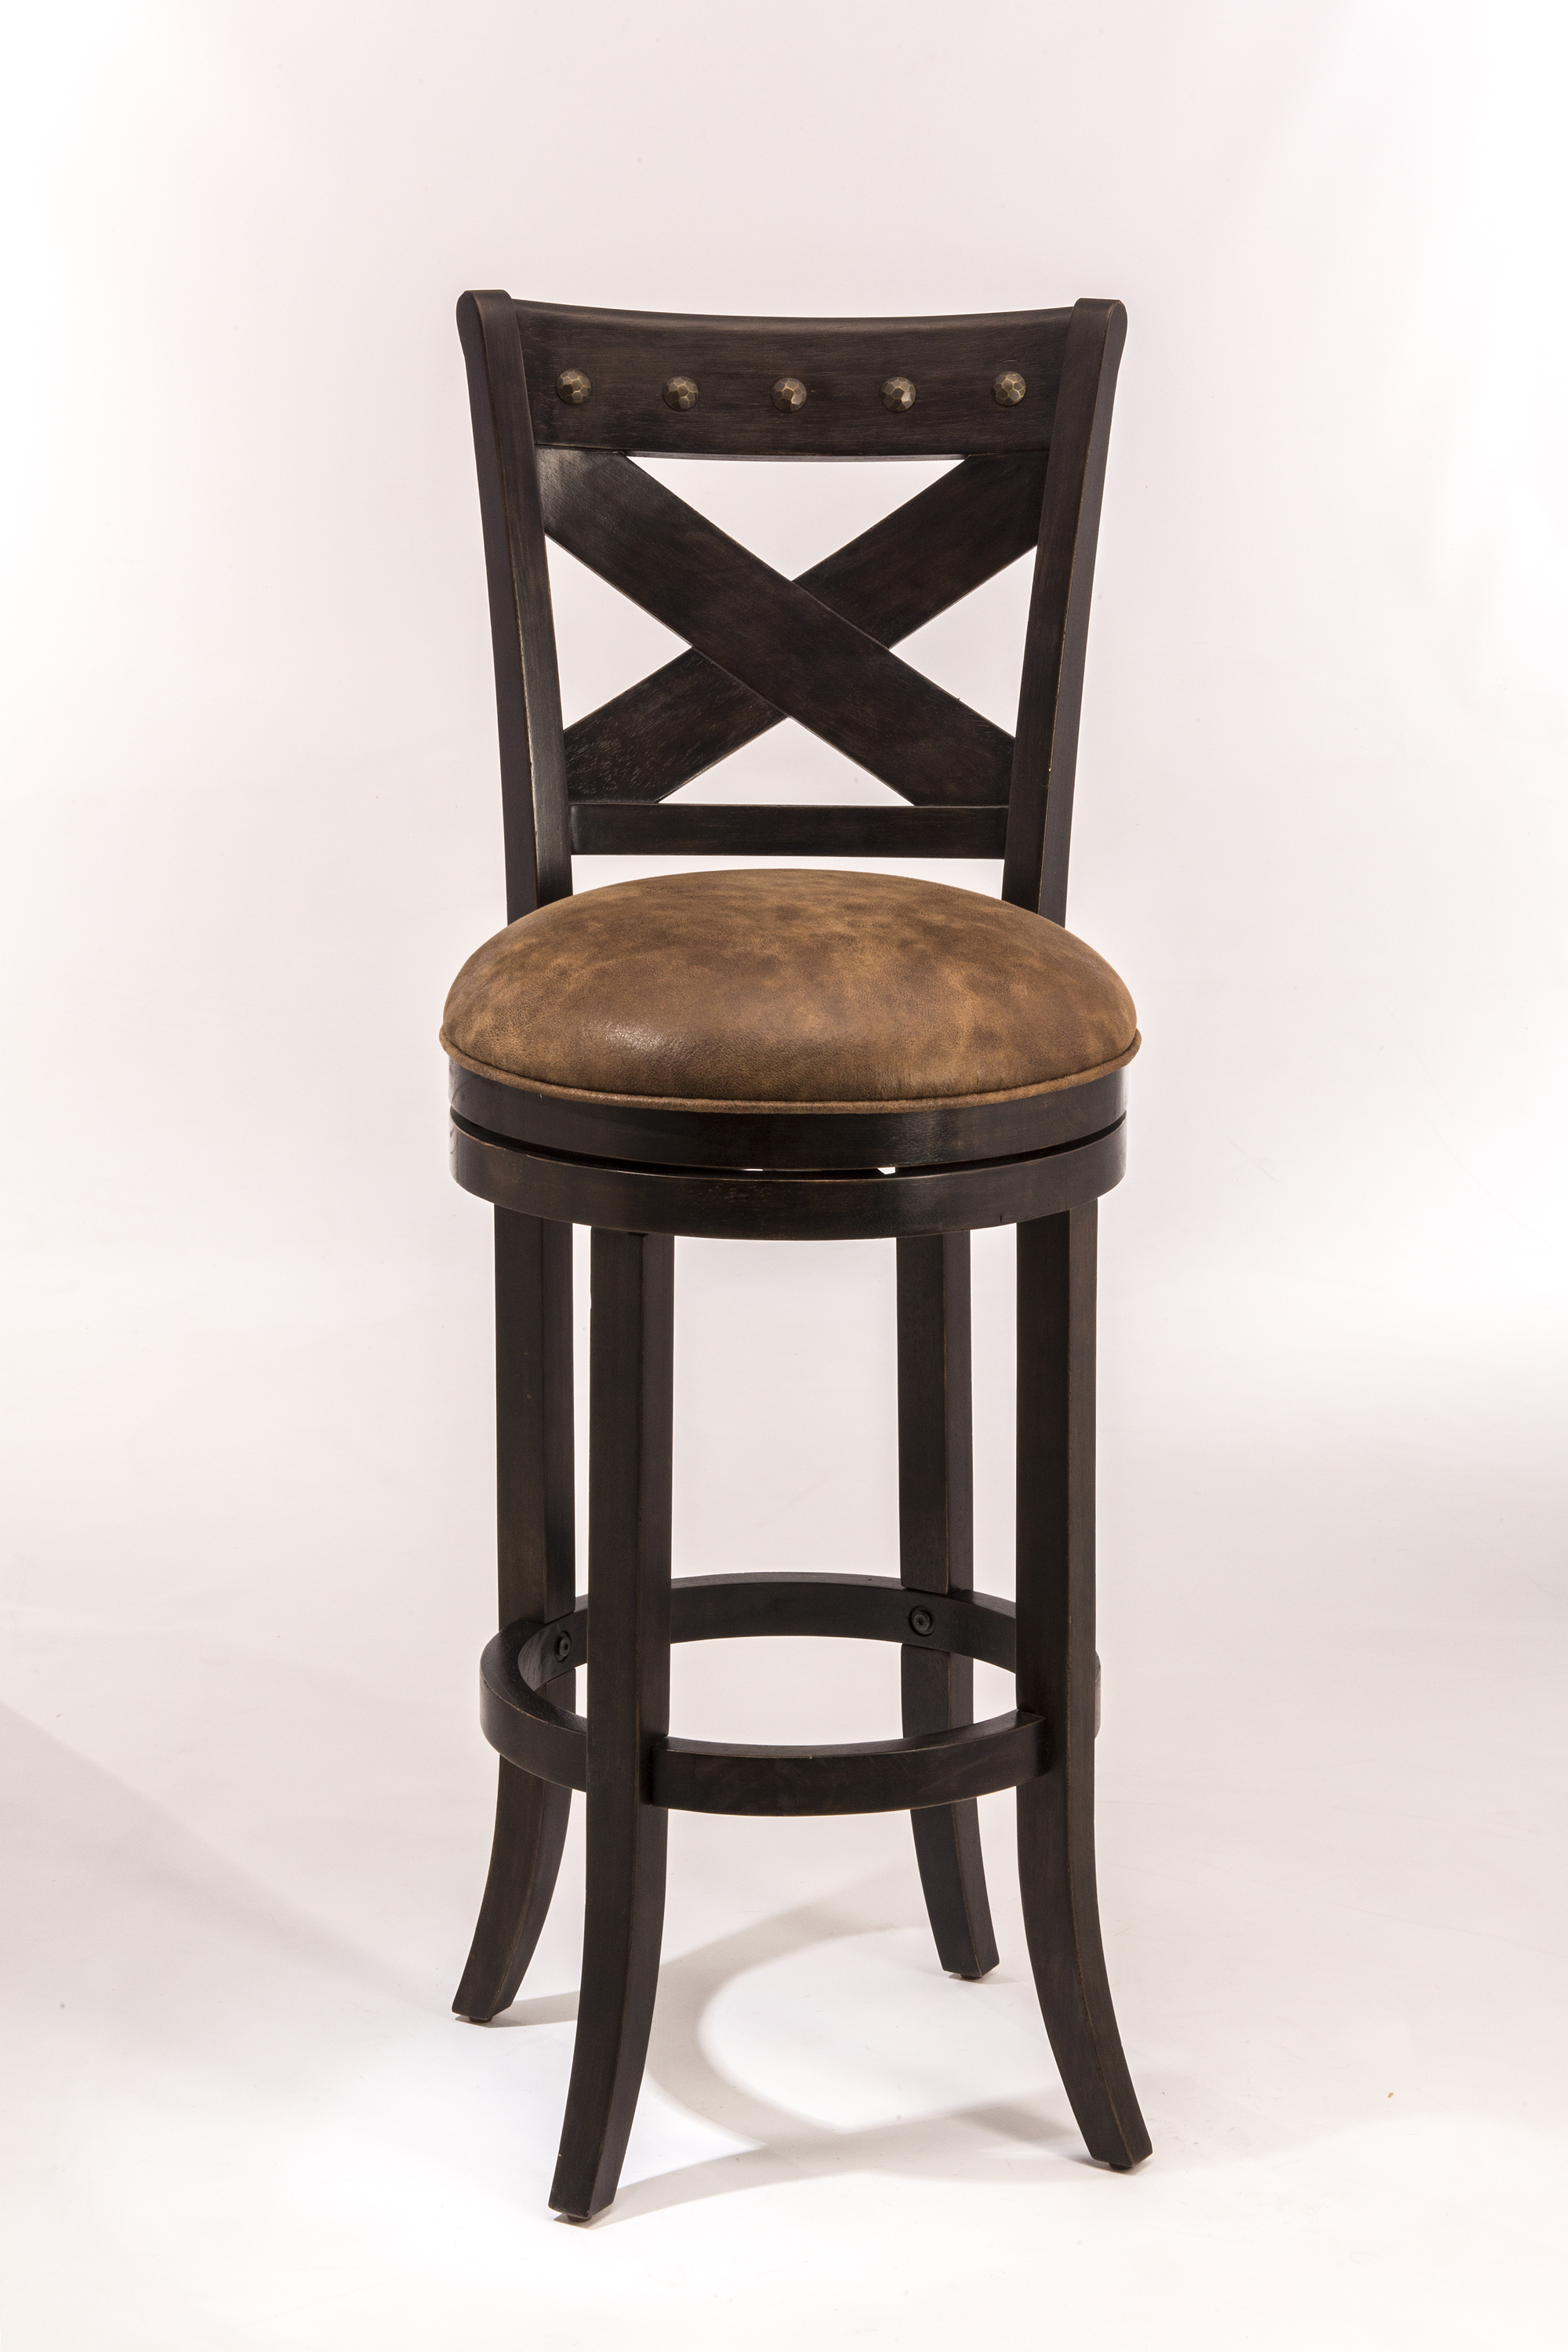 Hillsdale Wood Stools 5758 830 Swivel Bar Height Stool